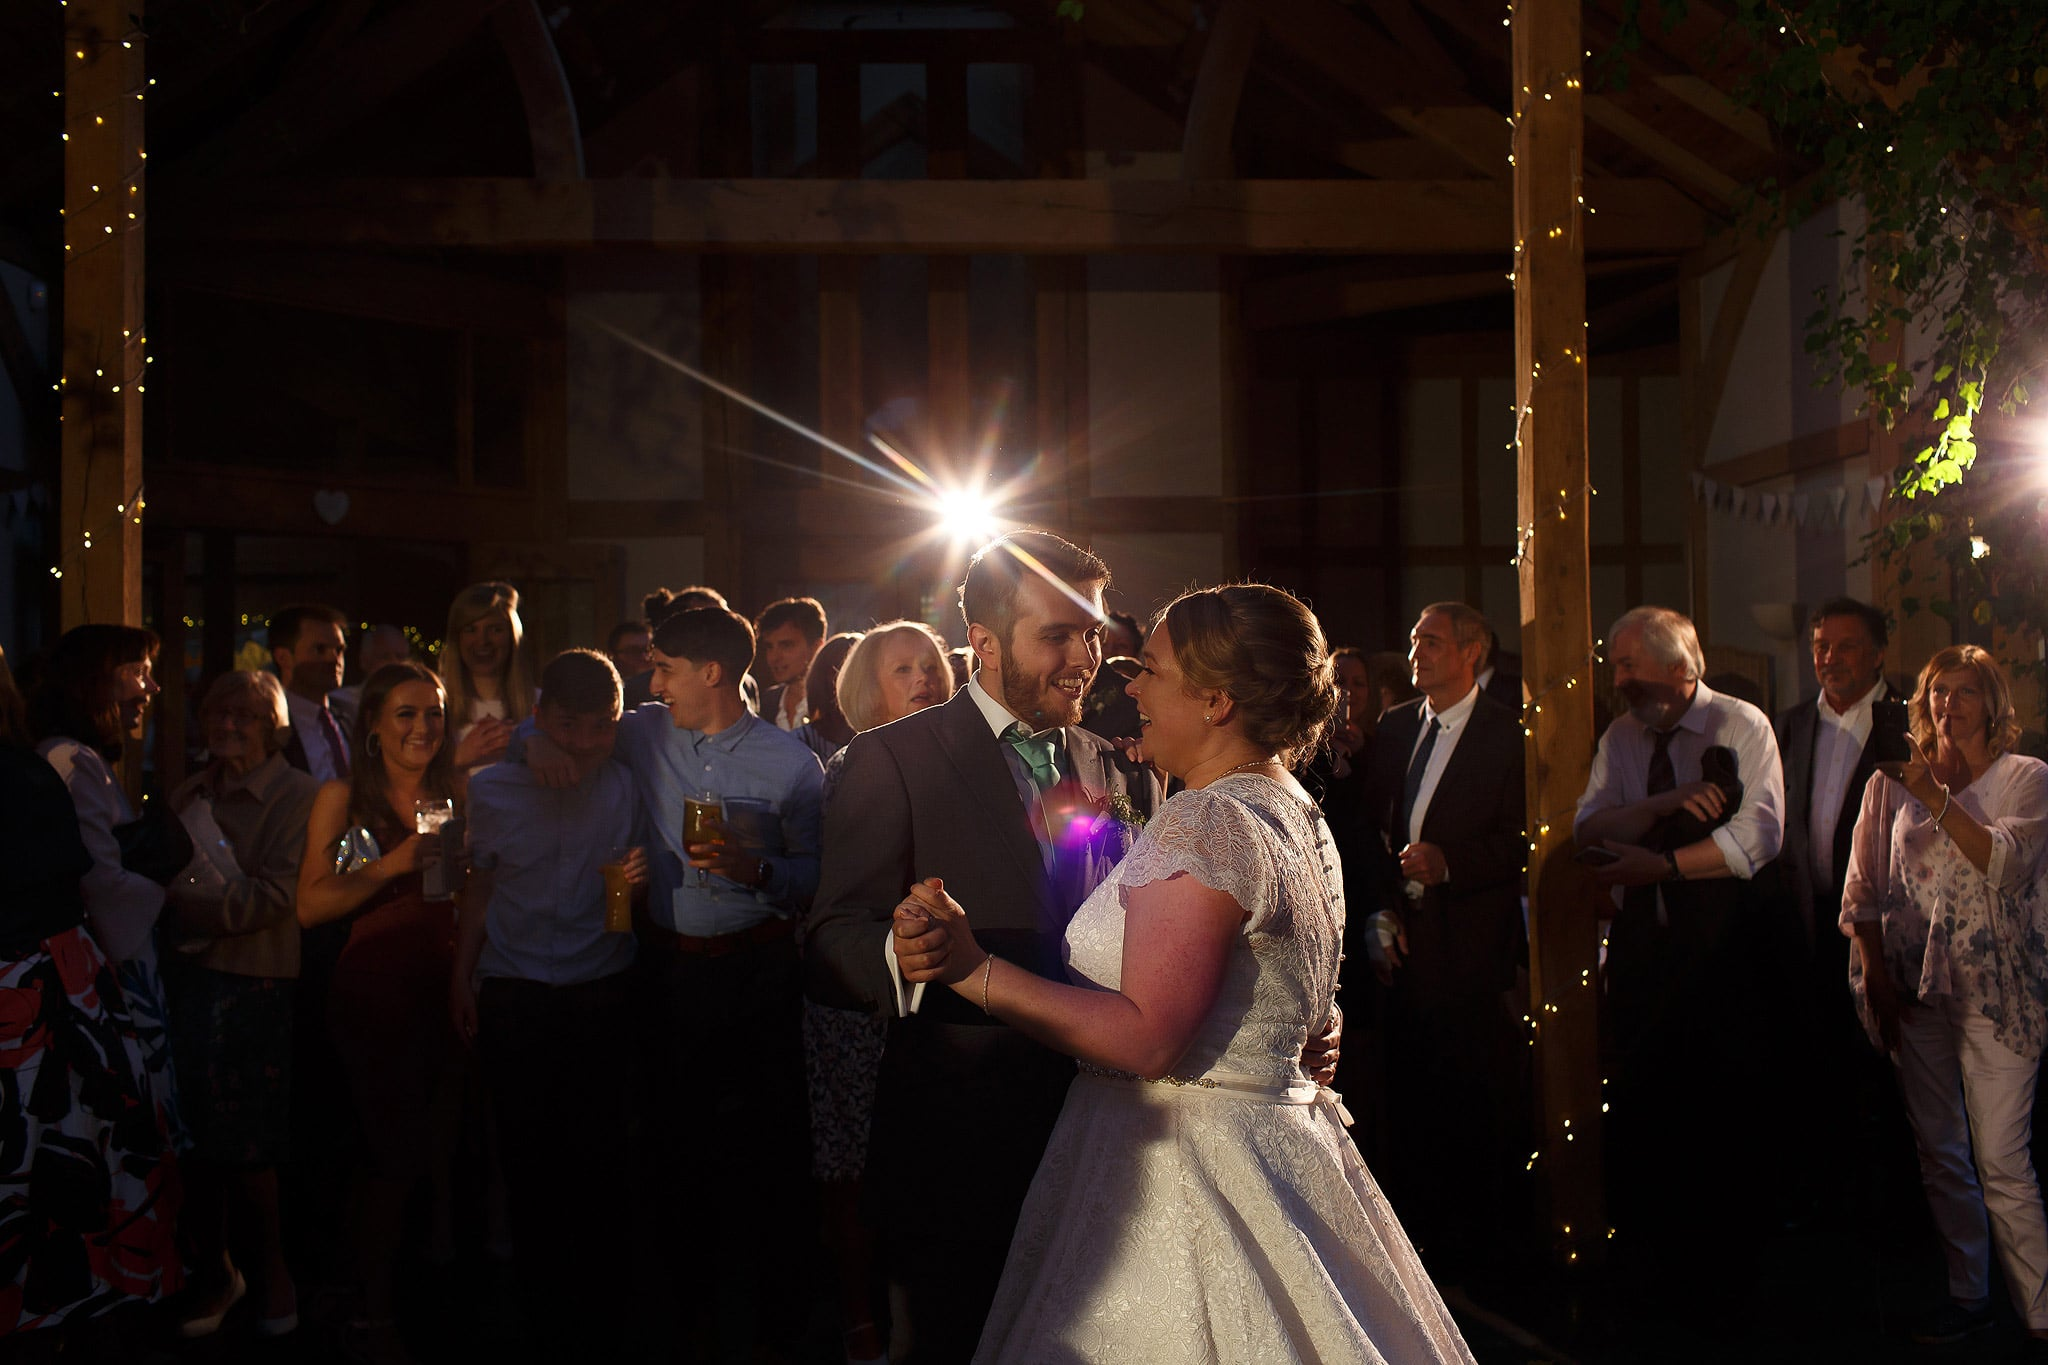 First dance of bride and groom's wedding at the Oak Tree at Peover